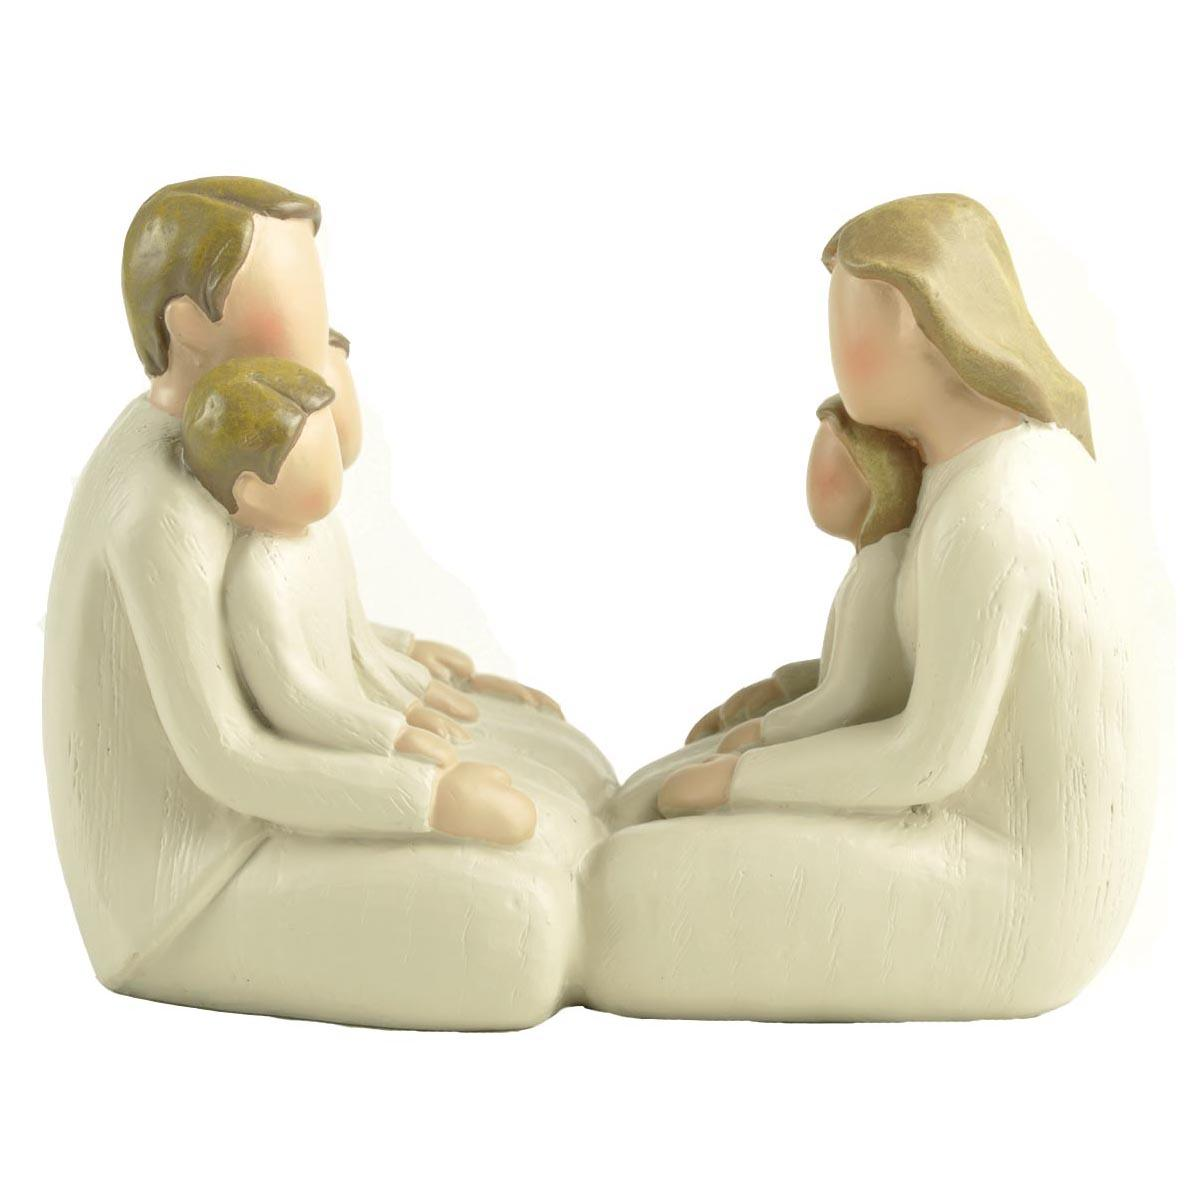 Family Statue Precious Moments Figurines, Together with Dad,Mom,Sons,Daughter